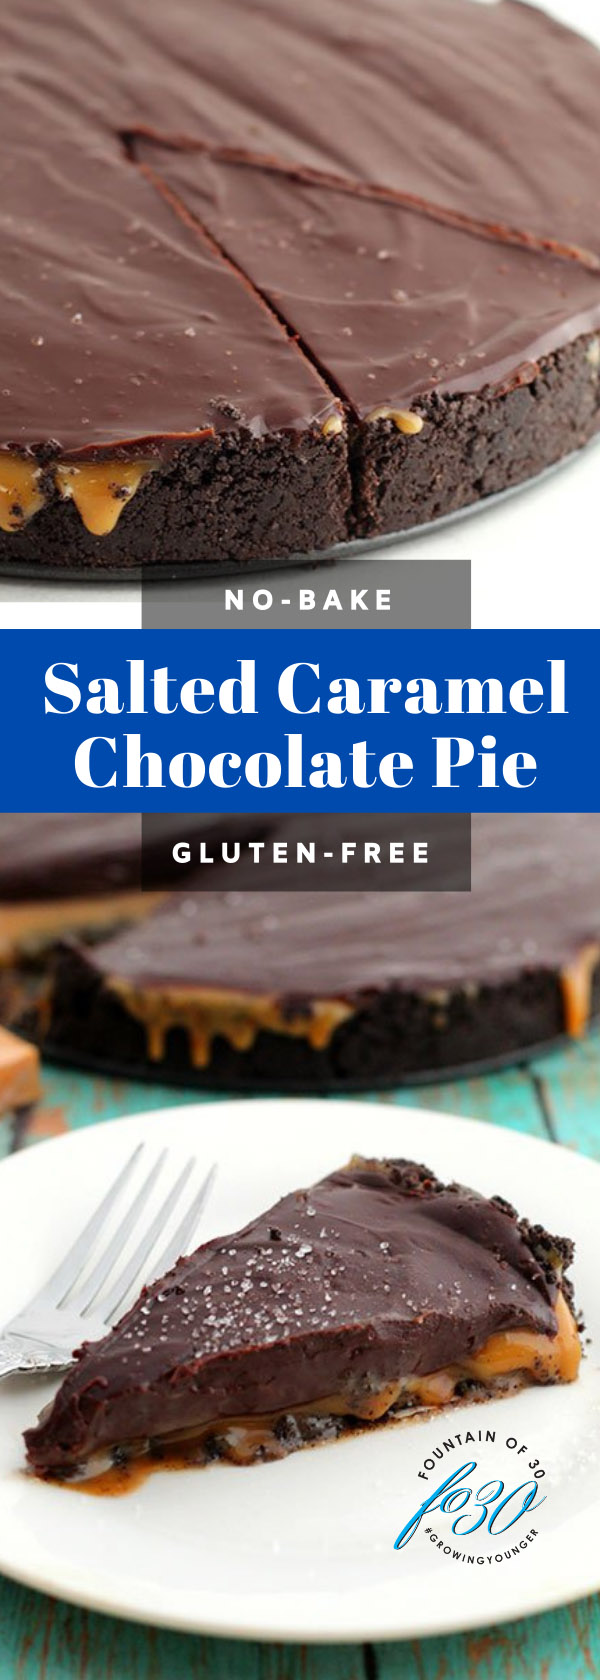 no-bake salted caramel chocolate pie fountainofd30